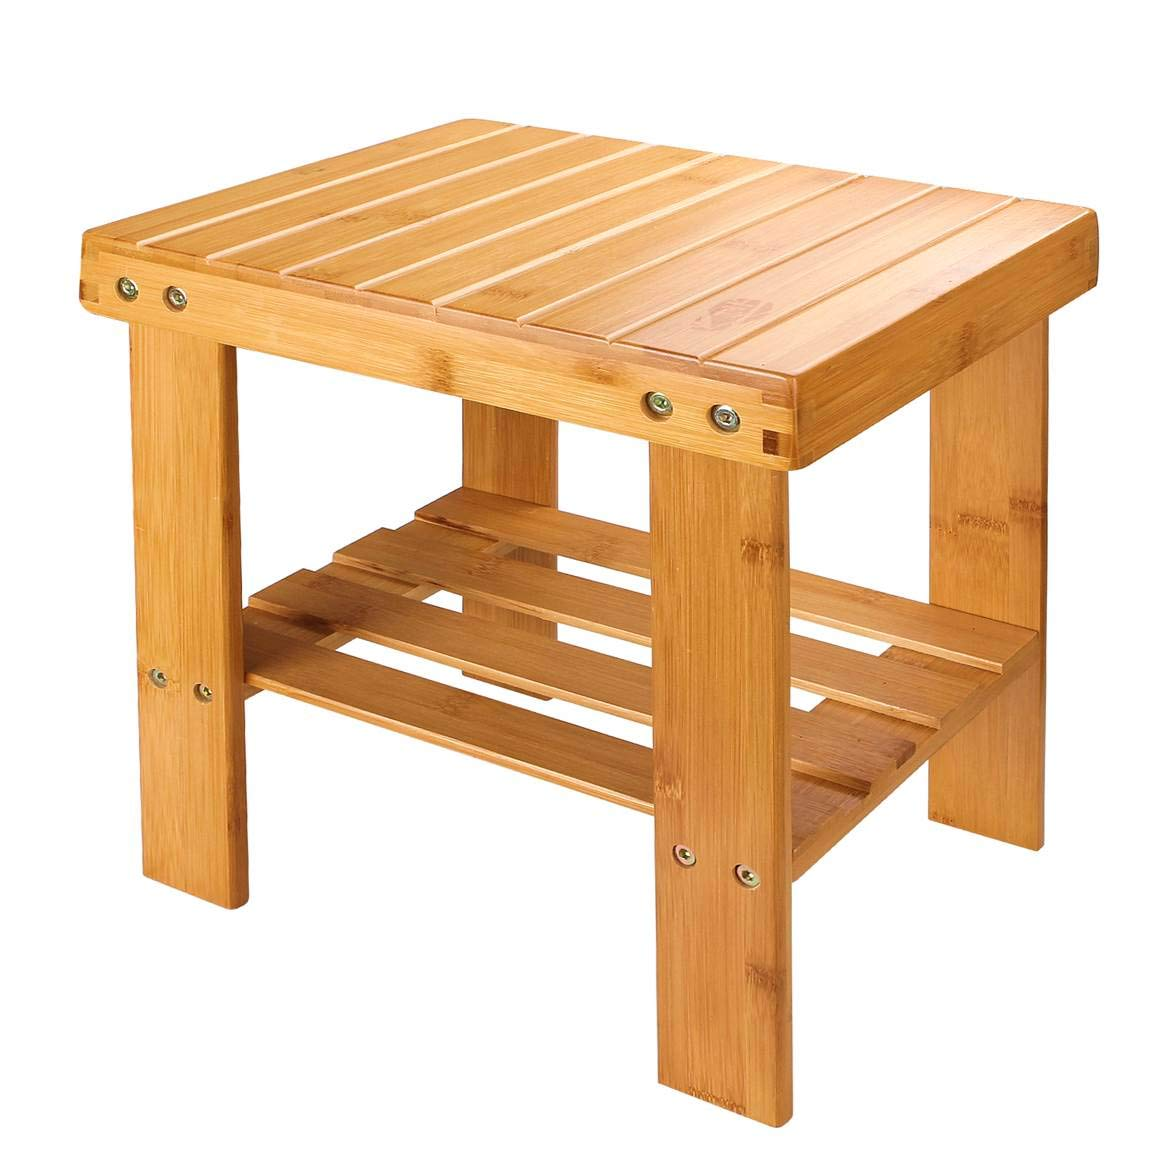 A+Selected Bamboo One Step Stool 13 inch Wooden Foot Stool with Storage Shelf for Mudroom Foyer Entryway Shoe Bench.